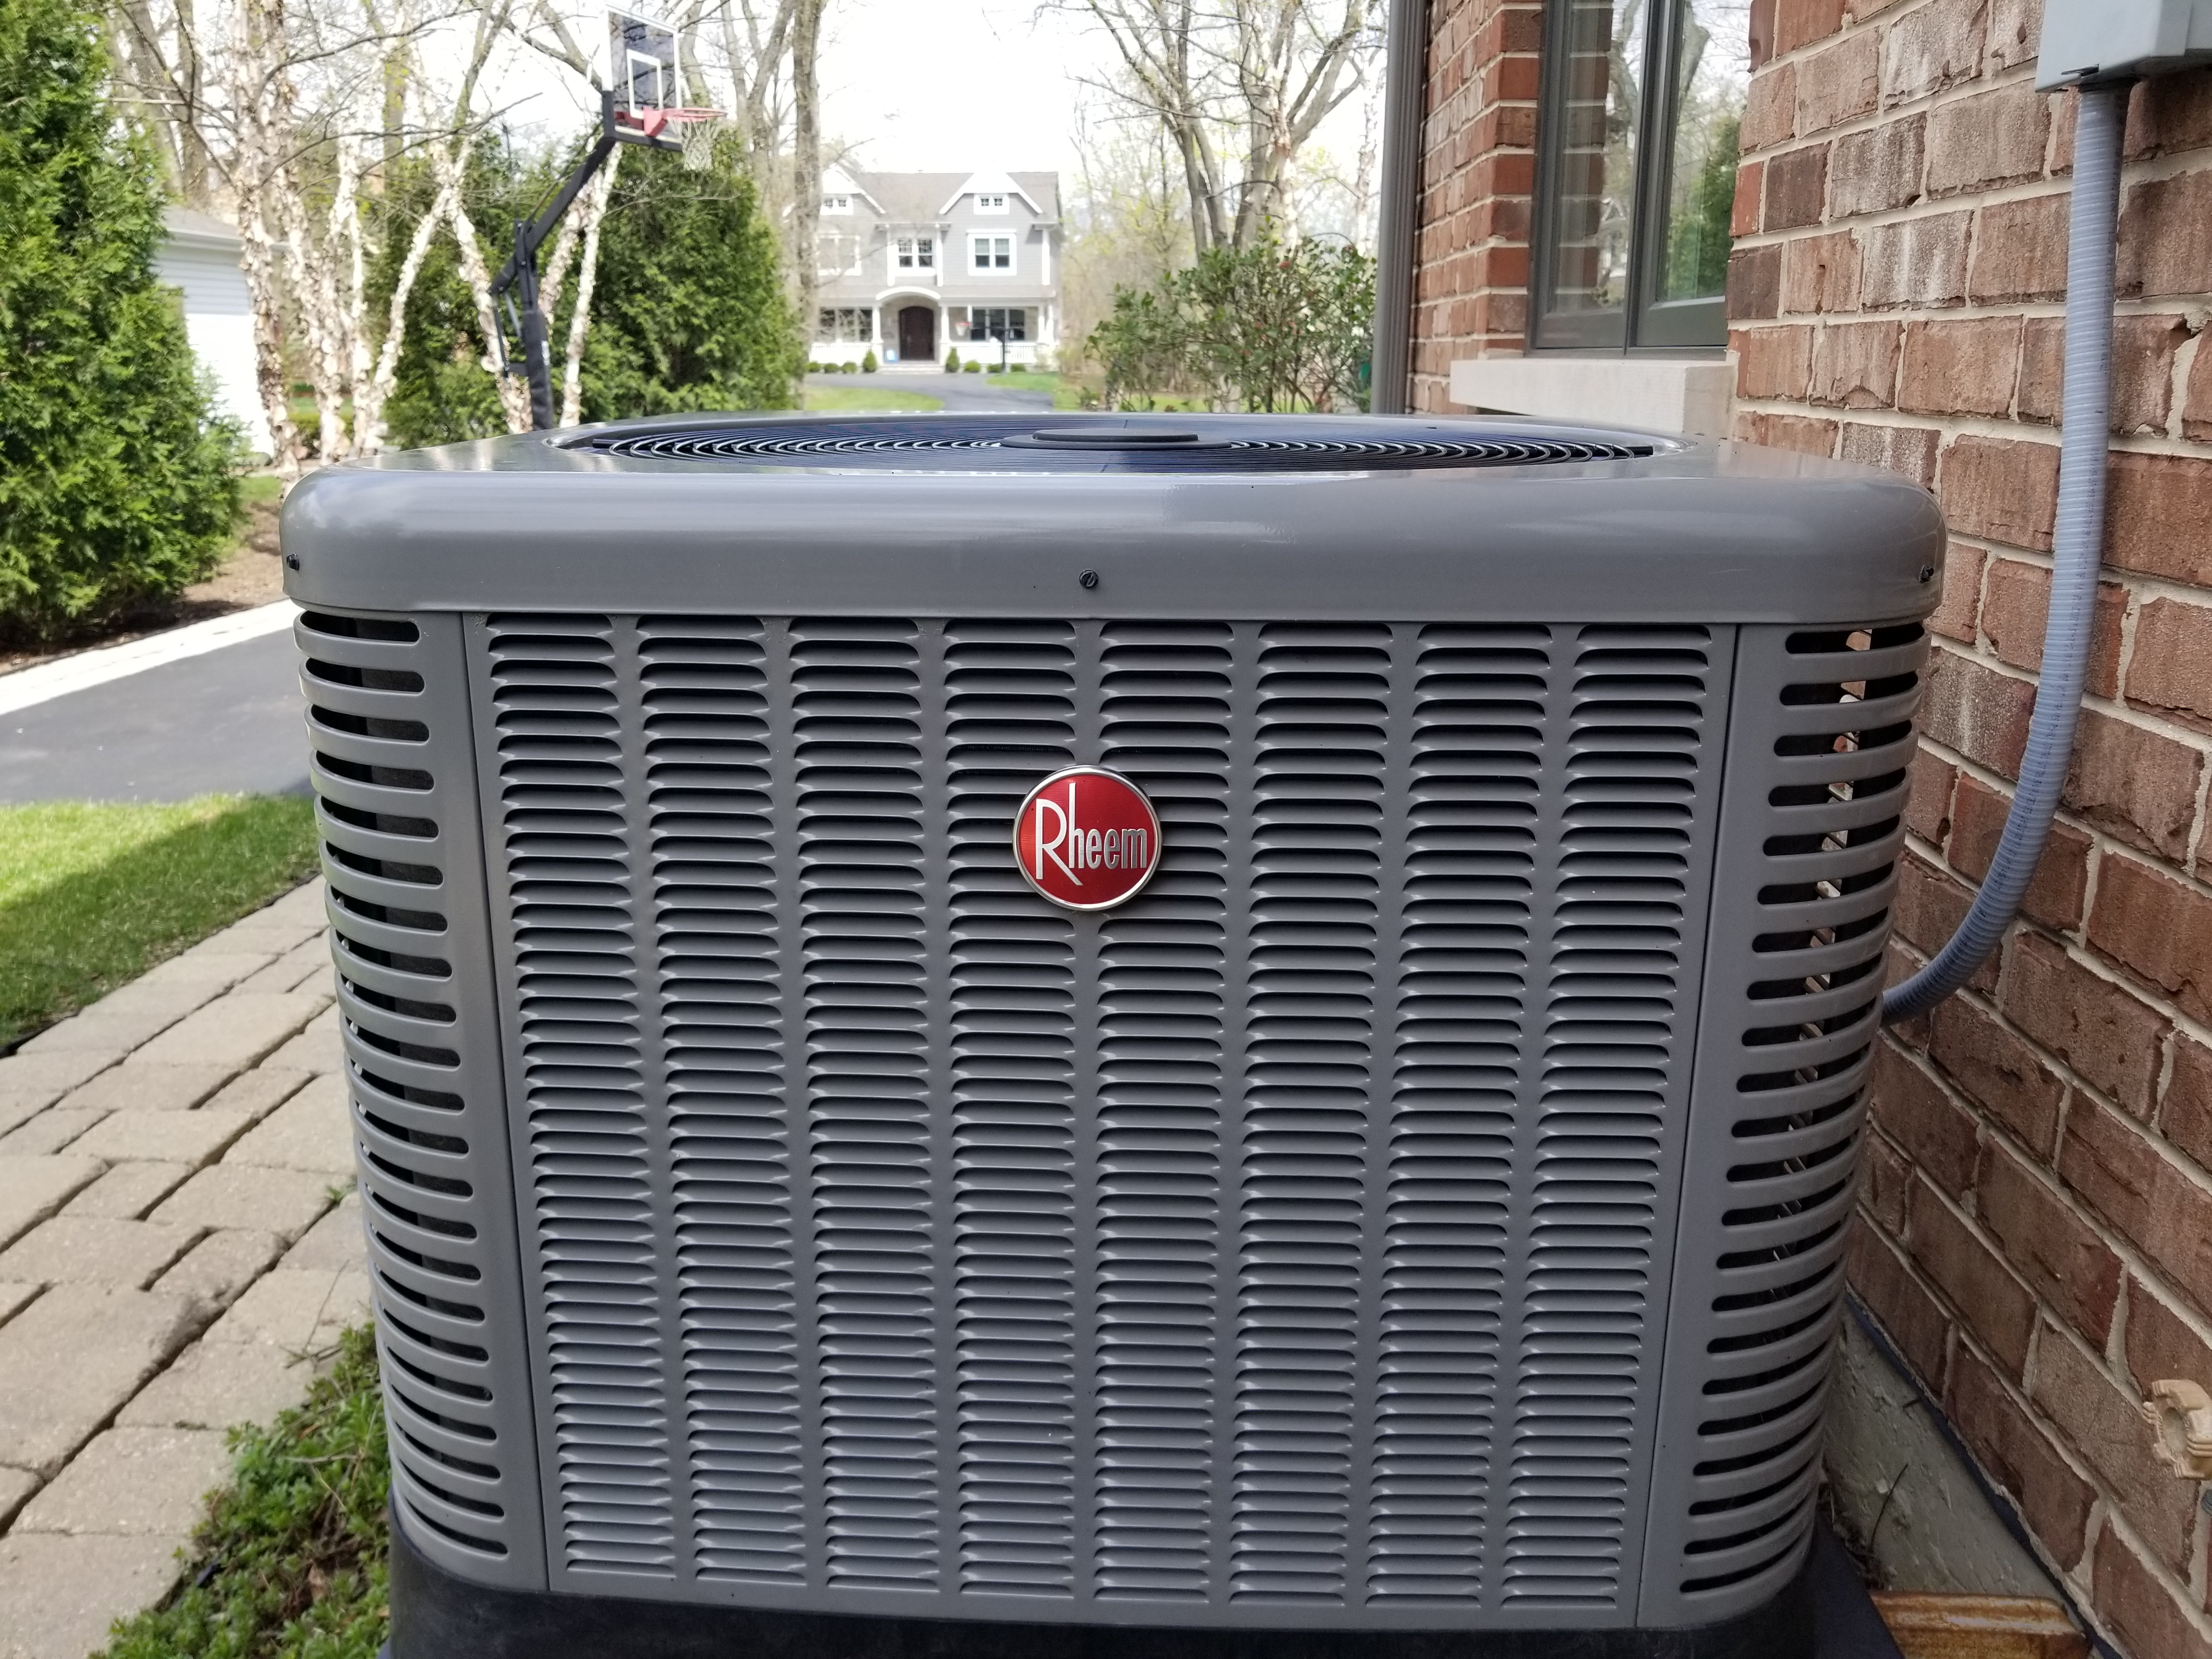 Performed annual maintenance on the Rheem and Goodman air conditioning systems and made adjustments to improve the overall efficiency and life expectancy of the equipment